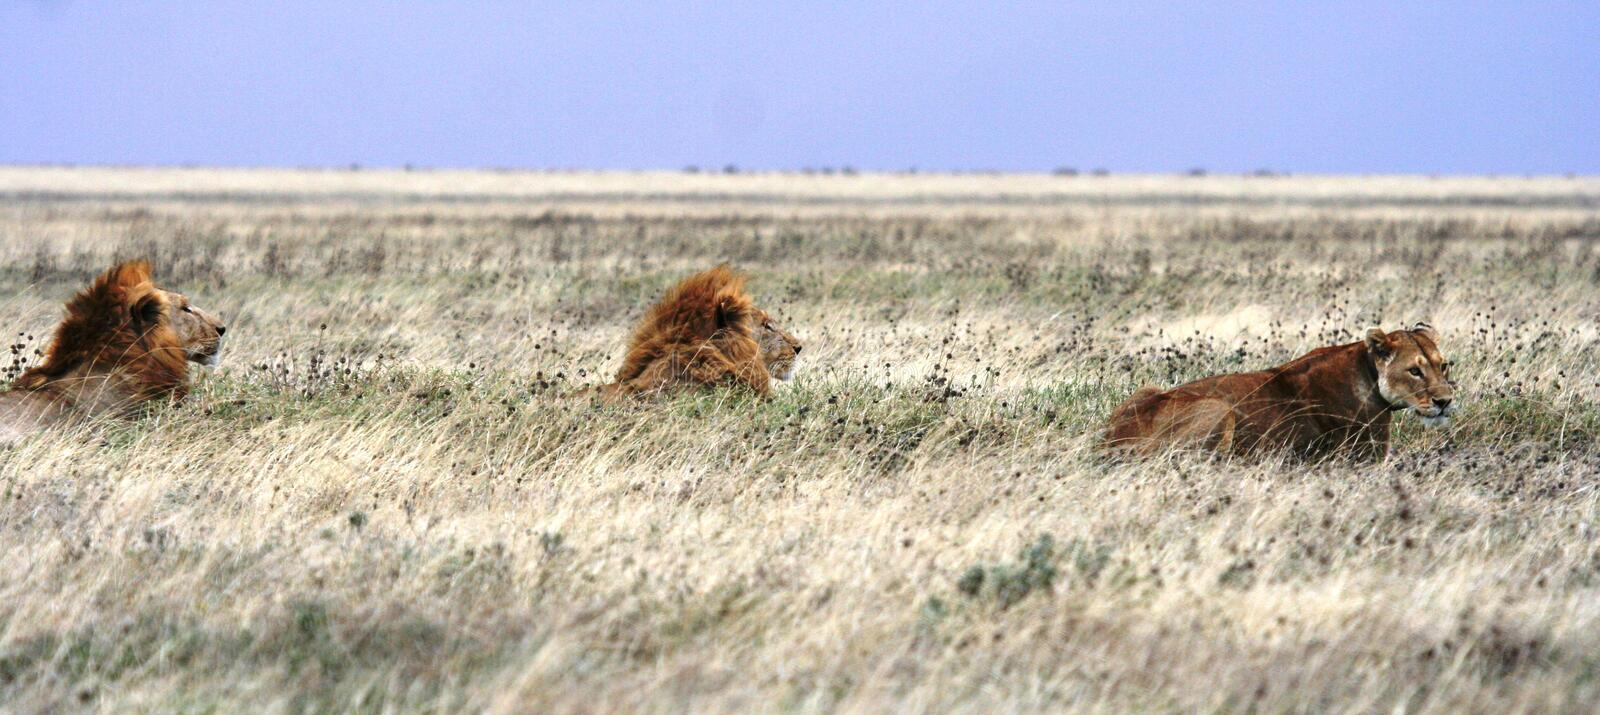 Lions royalty free stock photos